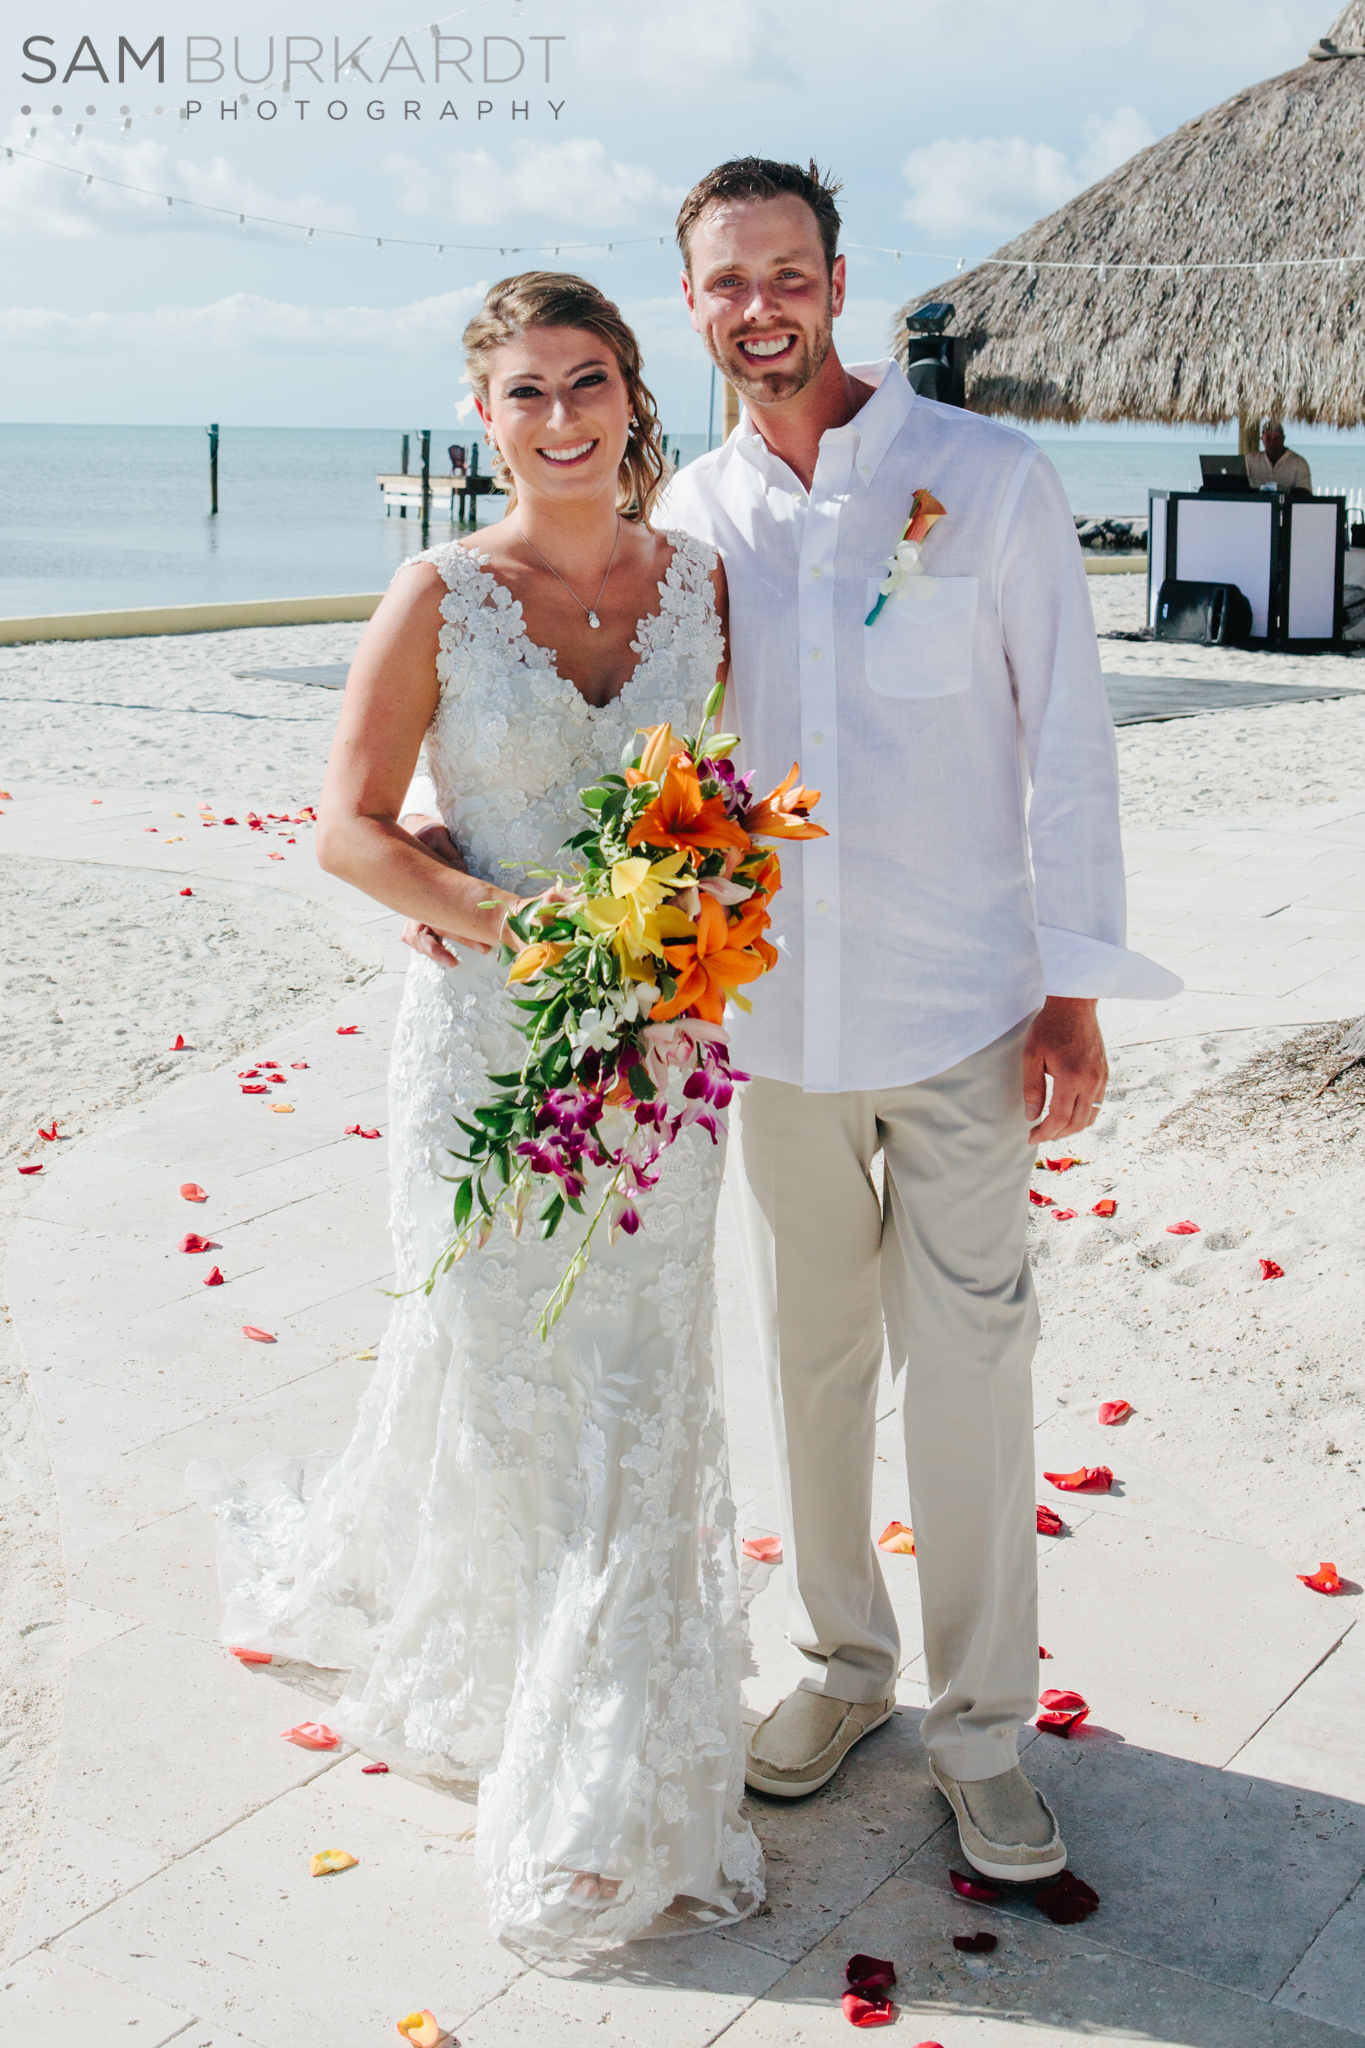 samburkardt_key_west_wedding_marathon_florida_summer_beach_ocean_front_0035.jpg